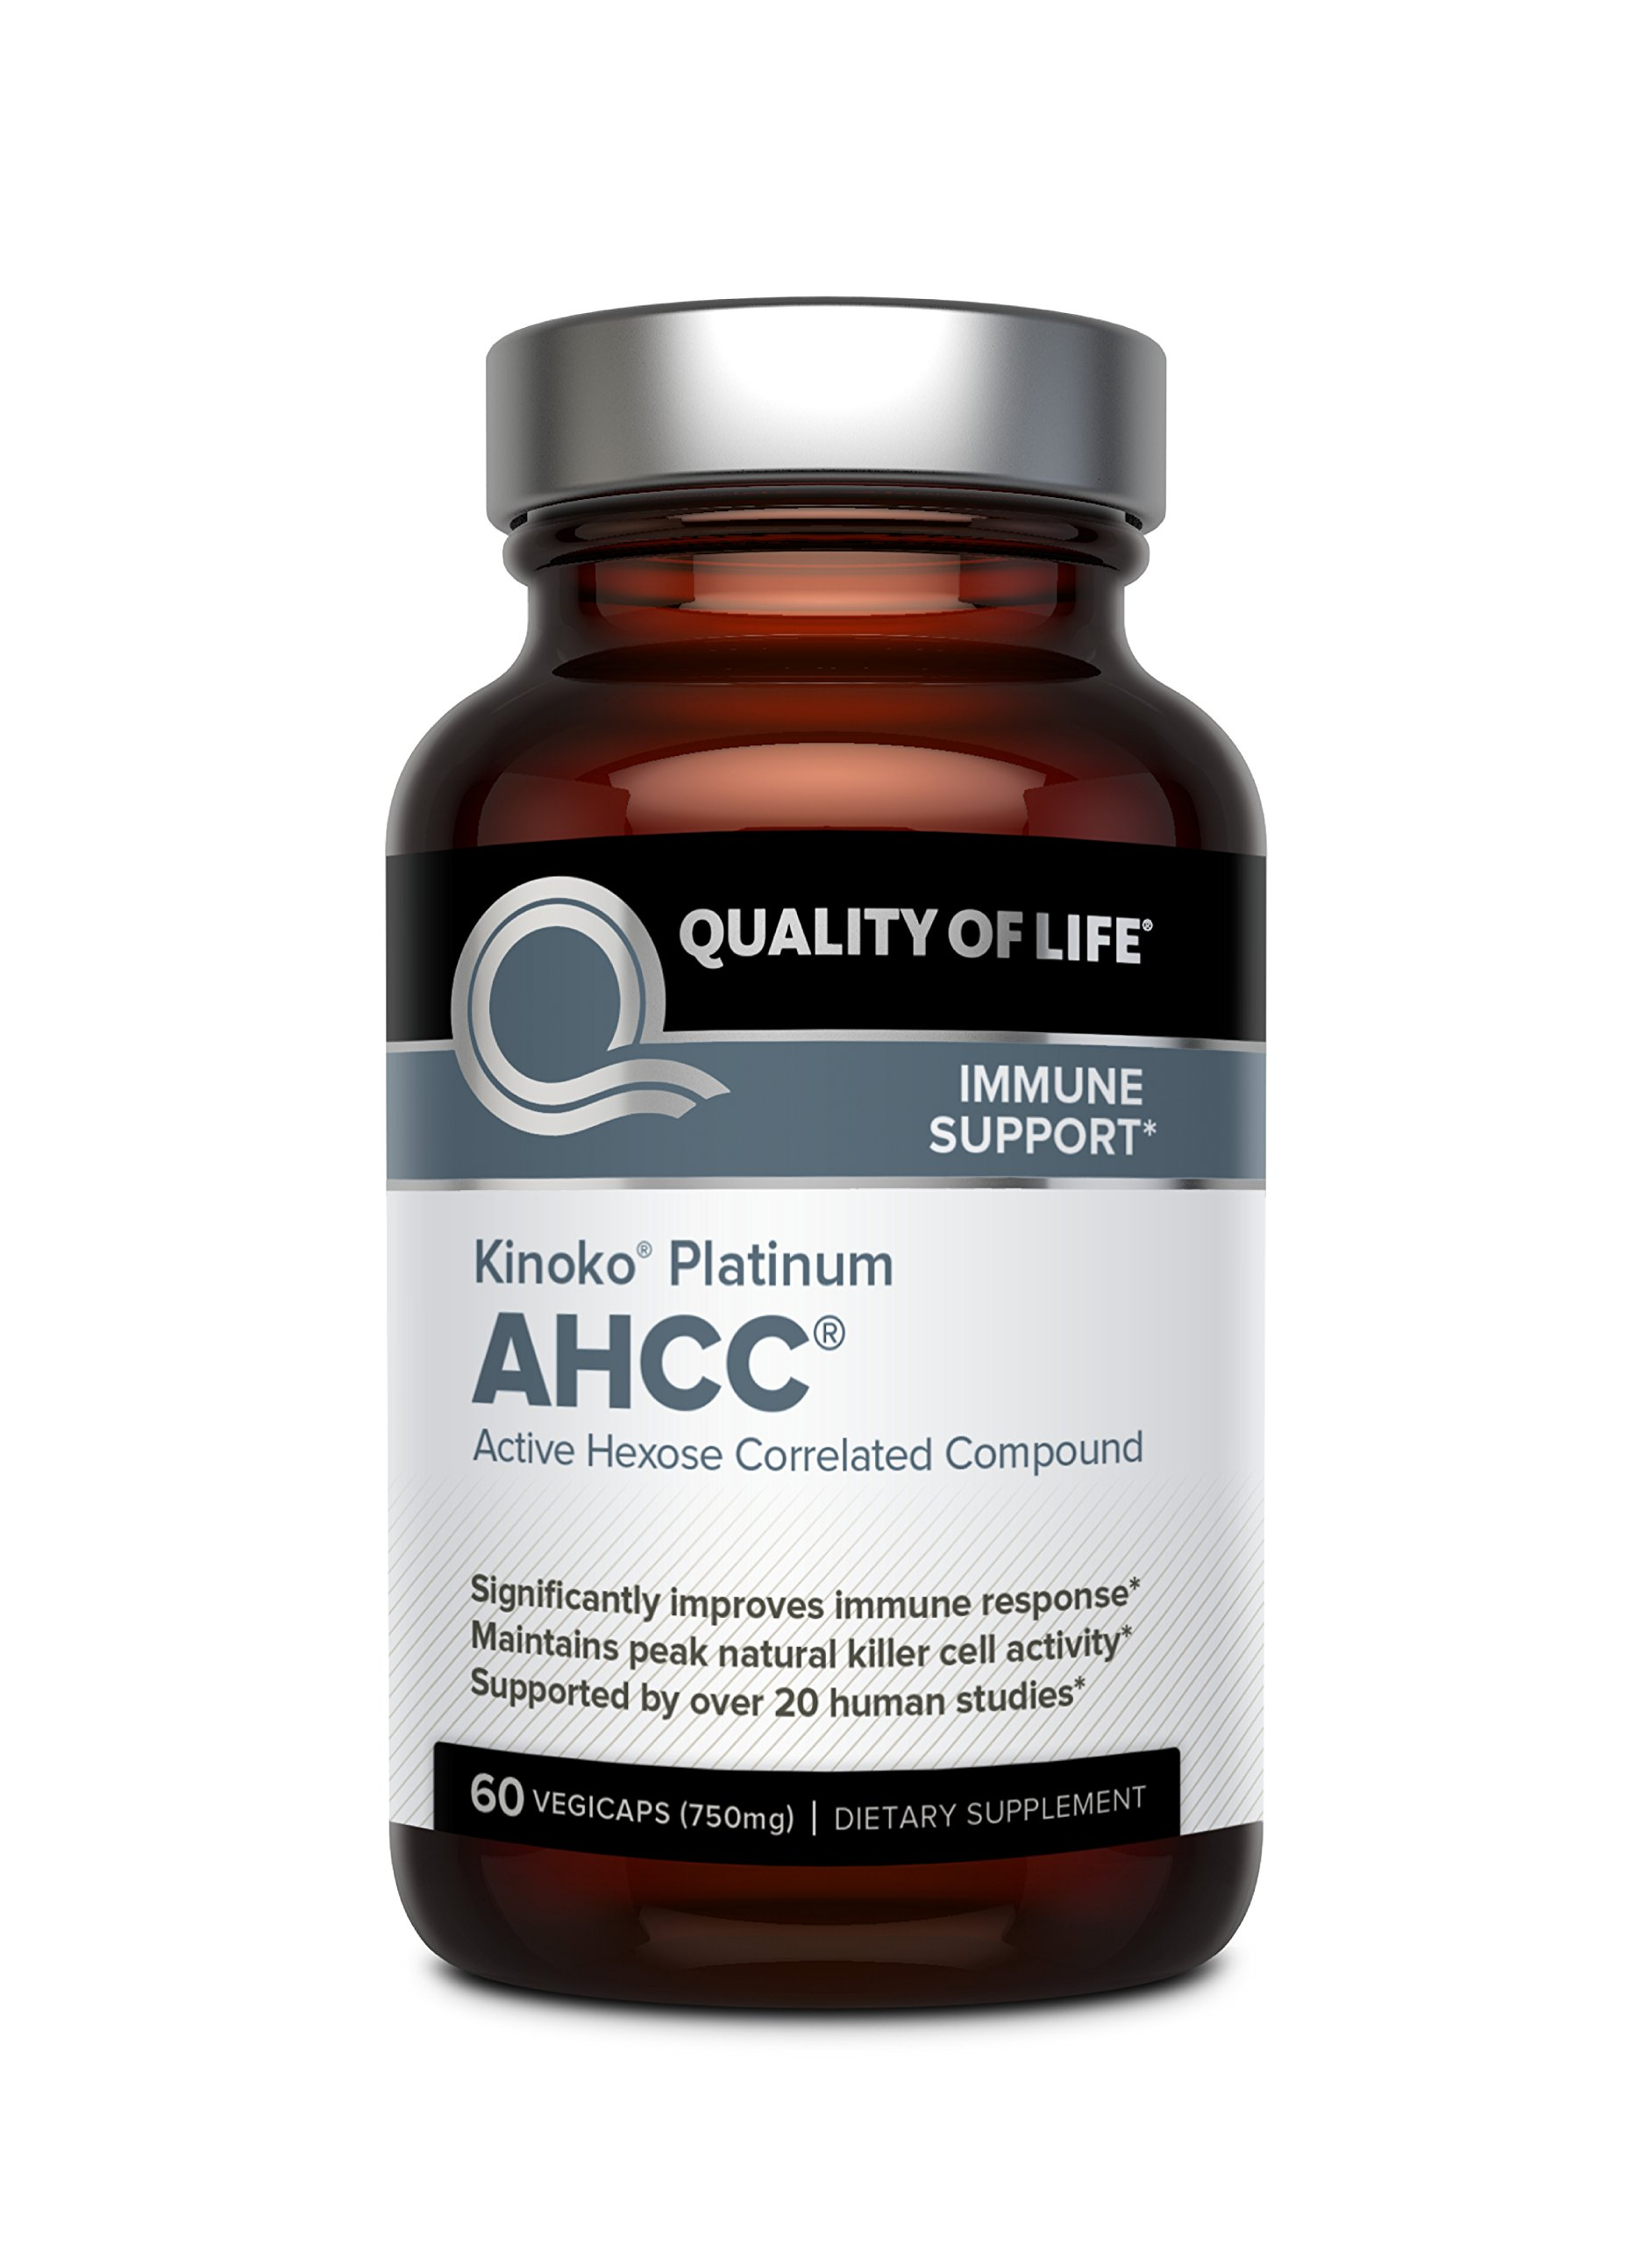 Premium Kinoko Platinum AHCC Supplement – 750mg of AHCC per Capsule – Supports Immune Health, Liver Function, Maintains Natural Killer Cell Activity – 60 Veggie Capsules